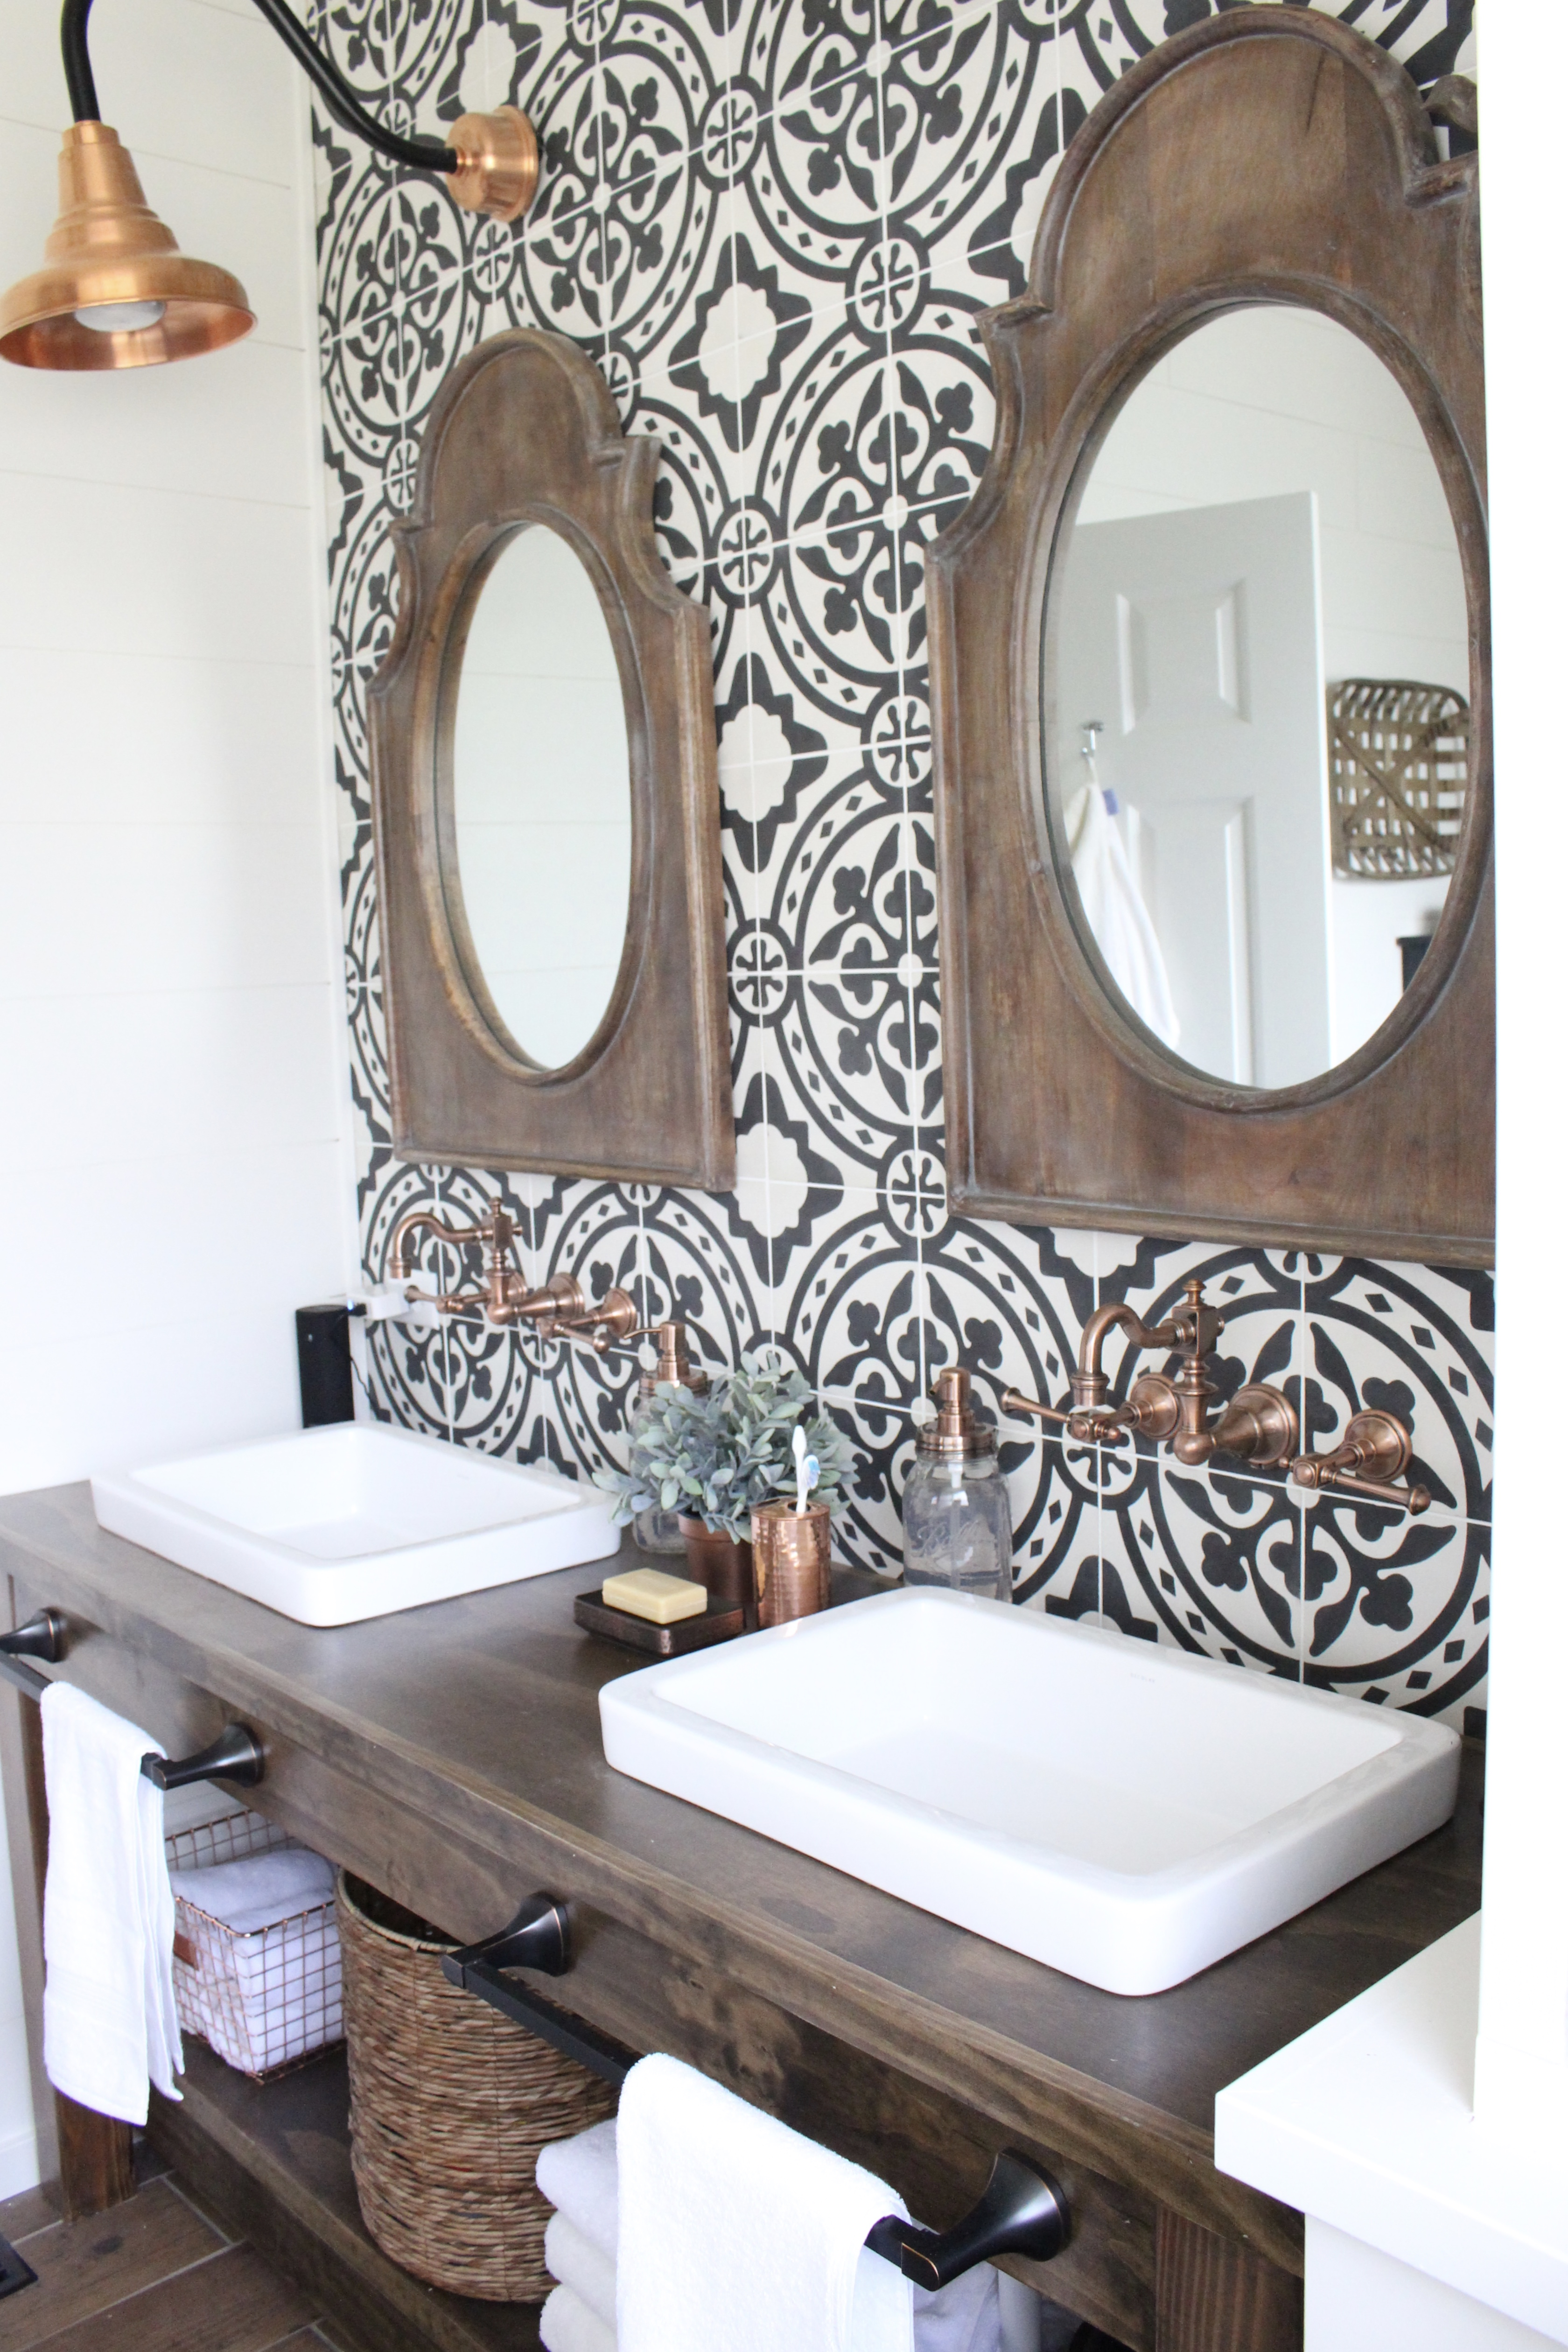 Master Bathroom Renovation- How to achieve a farmhouse style bathroom- farmhouse style- bathroom- remodeled bathroom- farmhouse bathroom- cement tile- copper accents- farmhouse style- bathroom update- bathroom reveal- bath